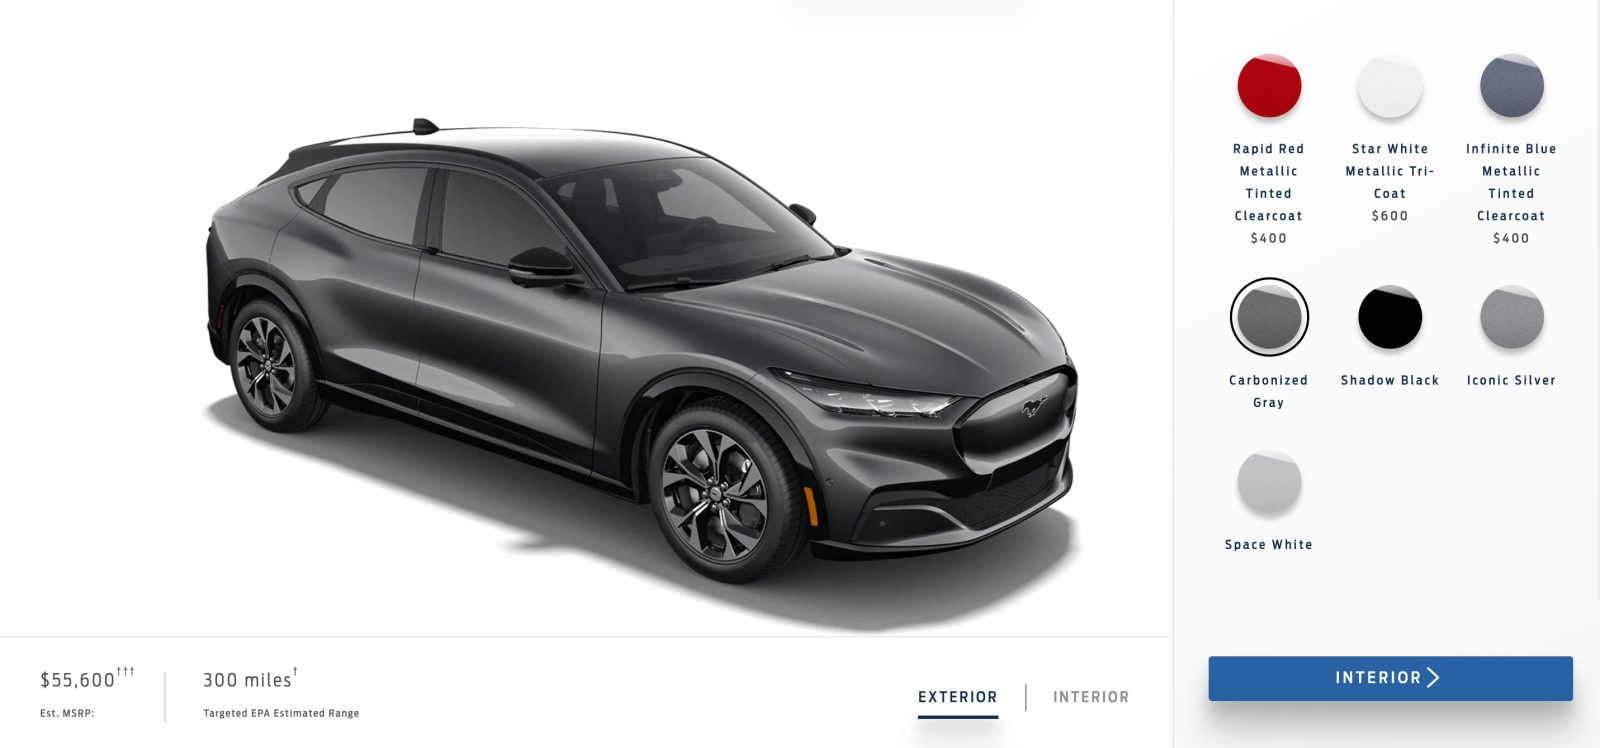 Ford launches reservation website for new Mustang Mach E for $500